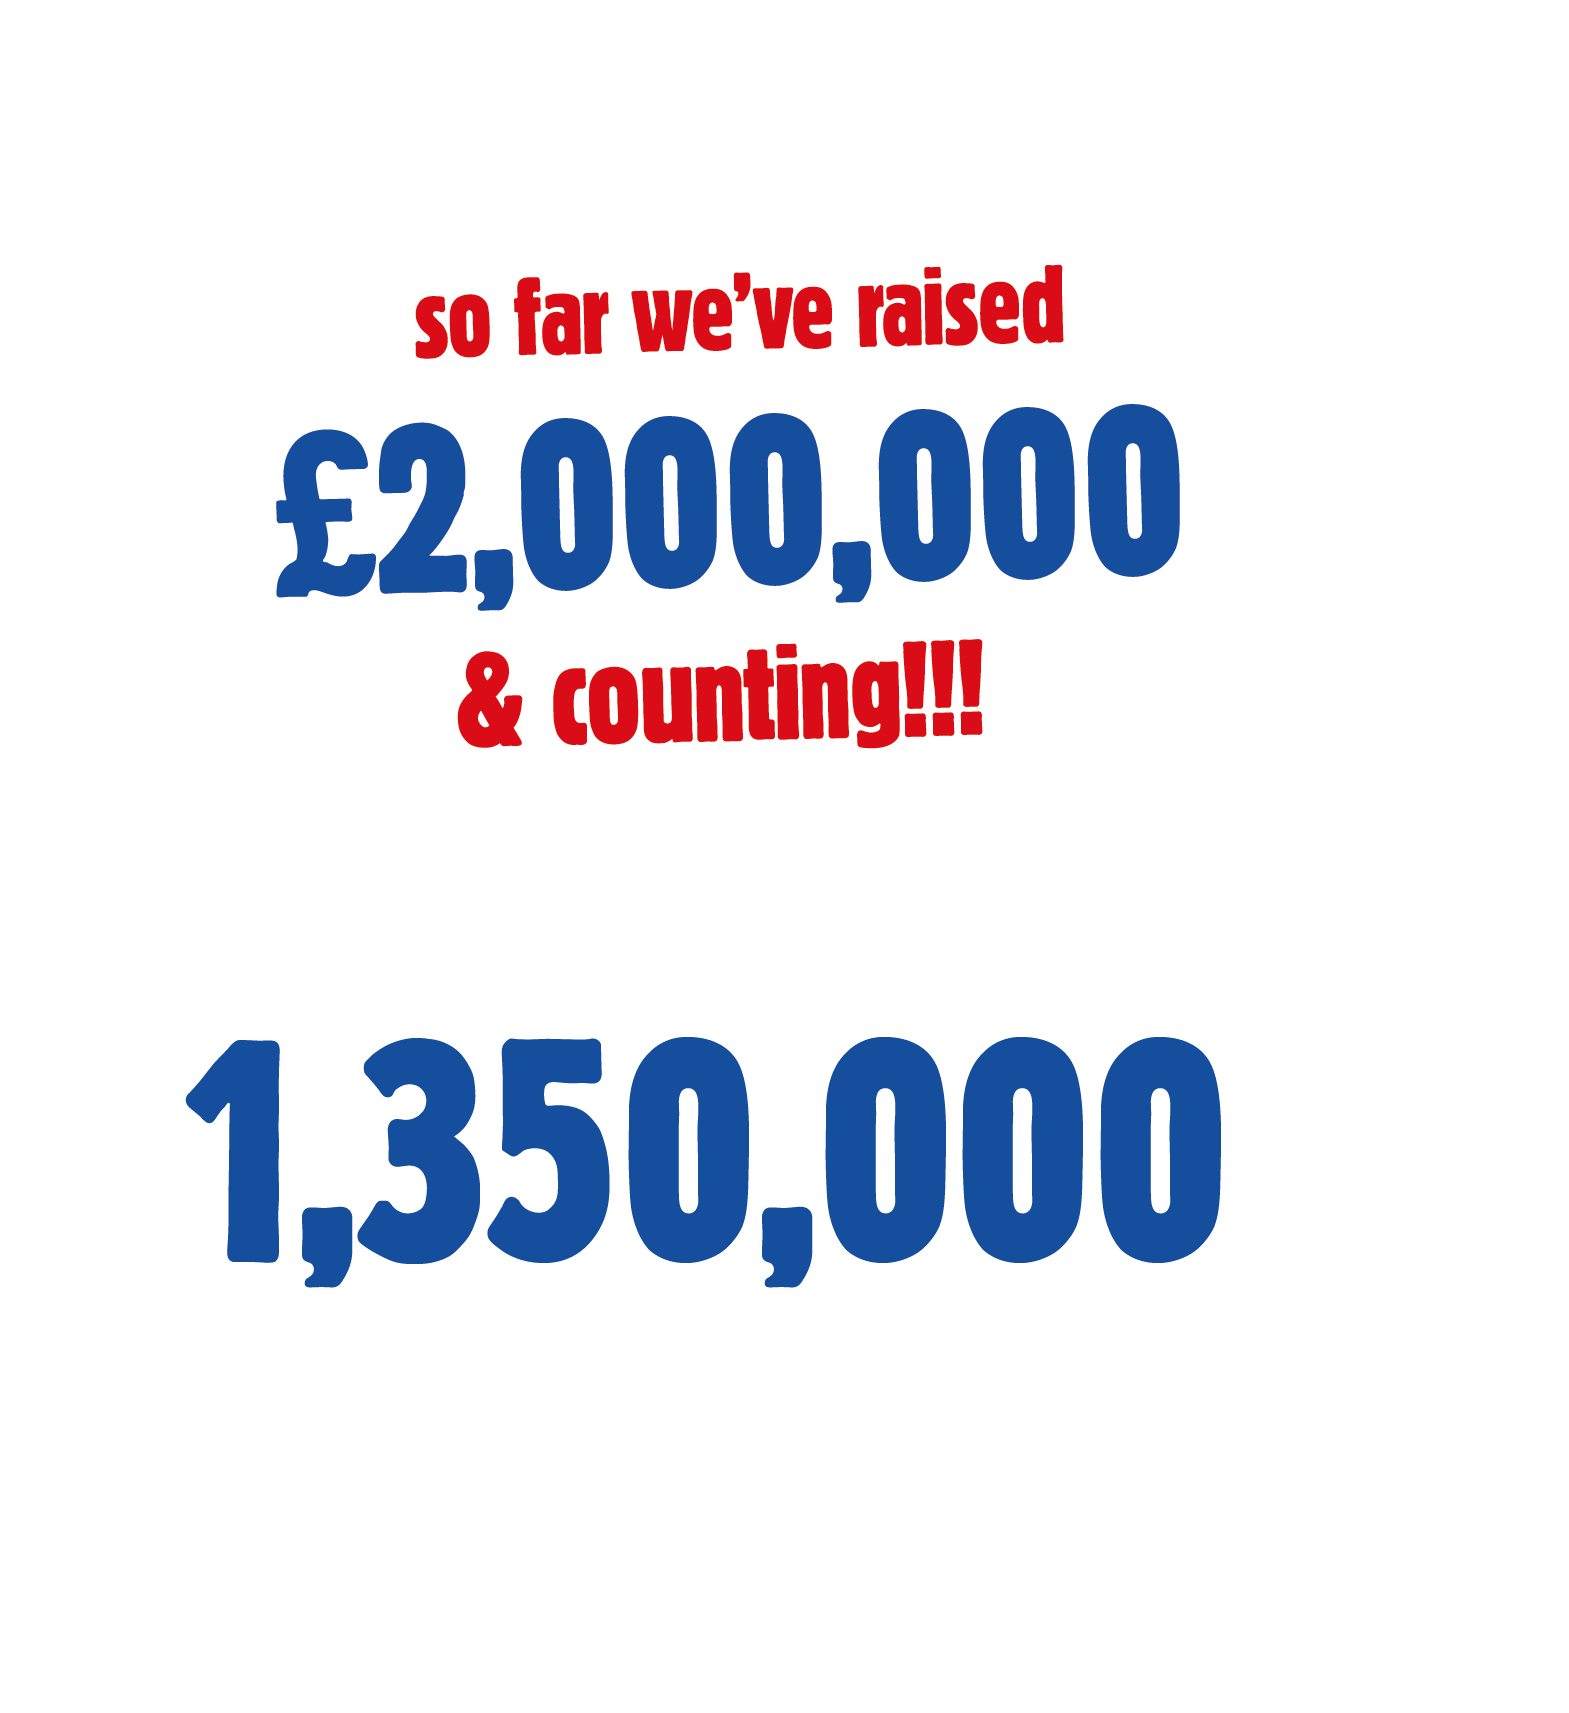 so far we've raised £2,000,000 & counting!!! 1,350,000 people